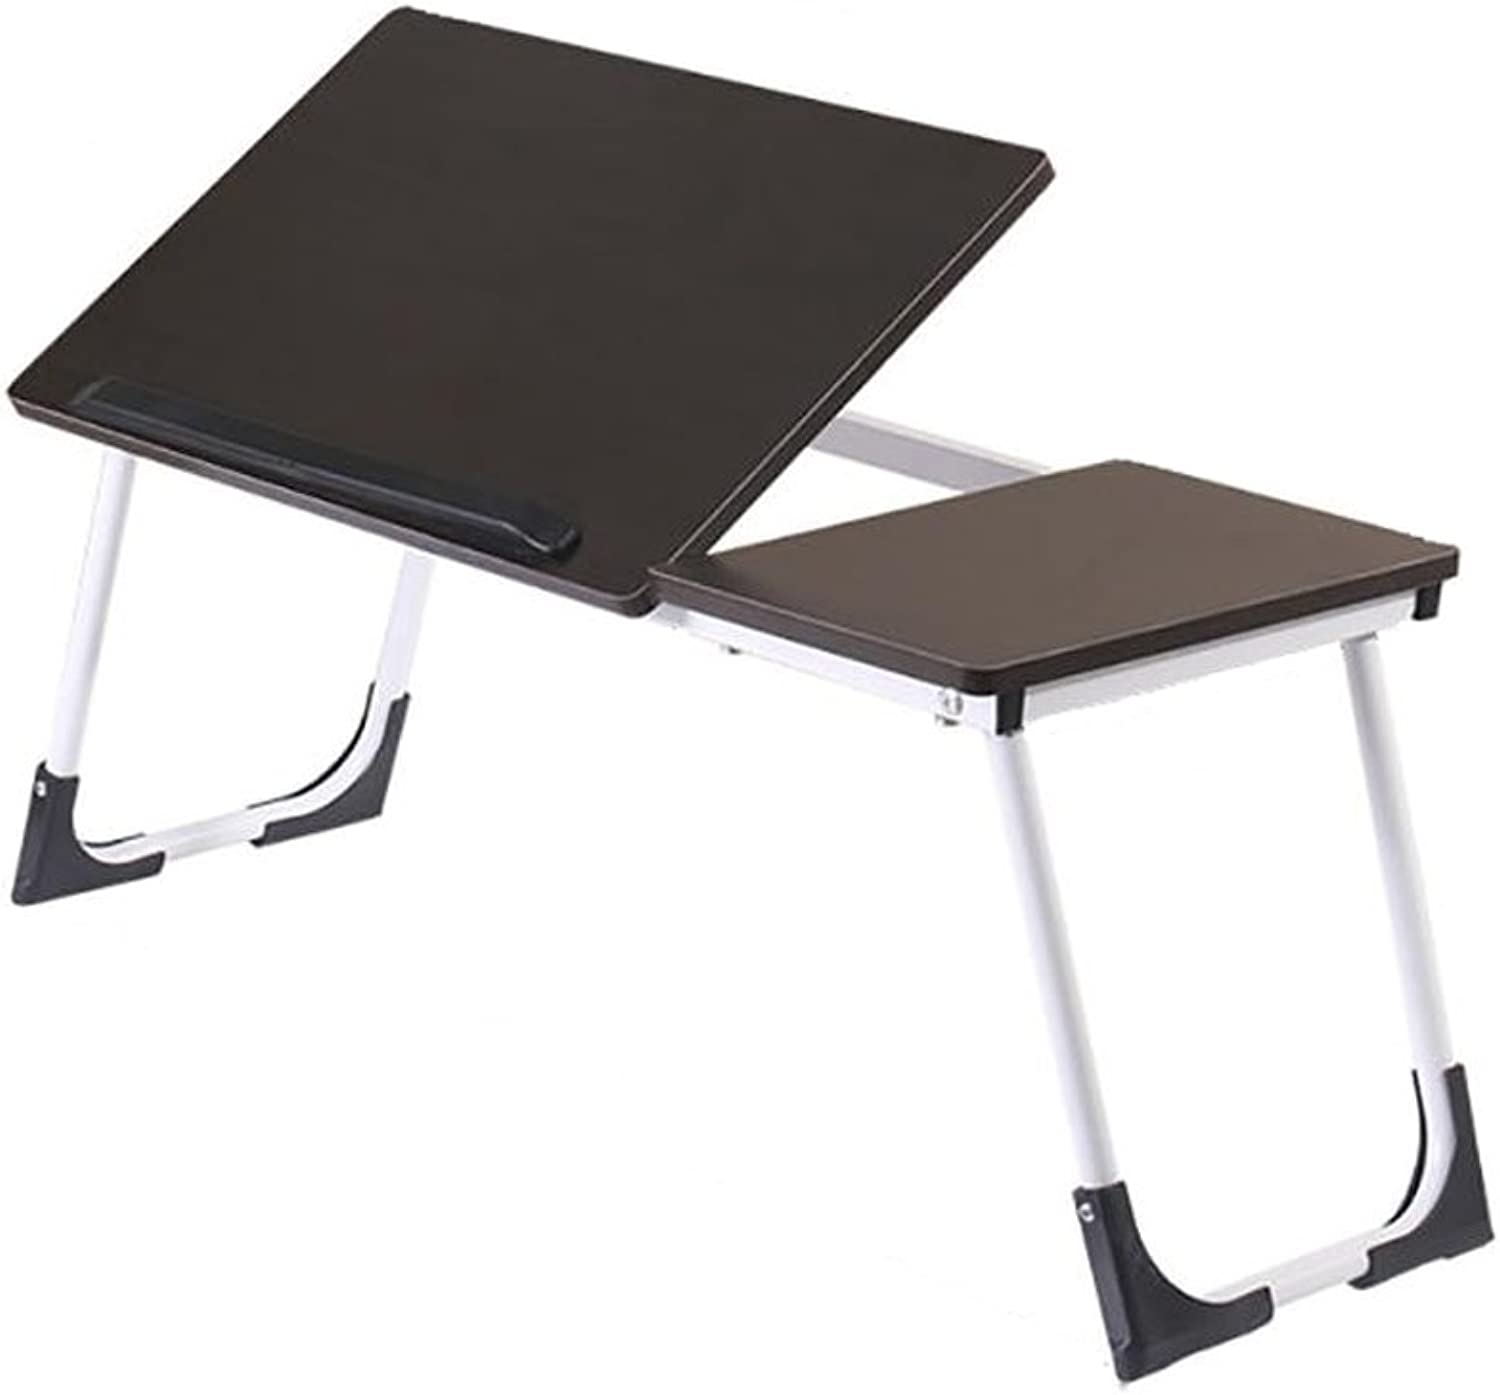 Folding Laptop Desk Learning Cot 65  30  30 cm ==